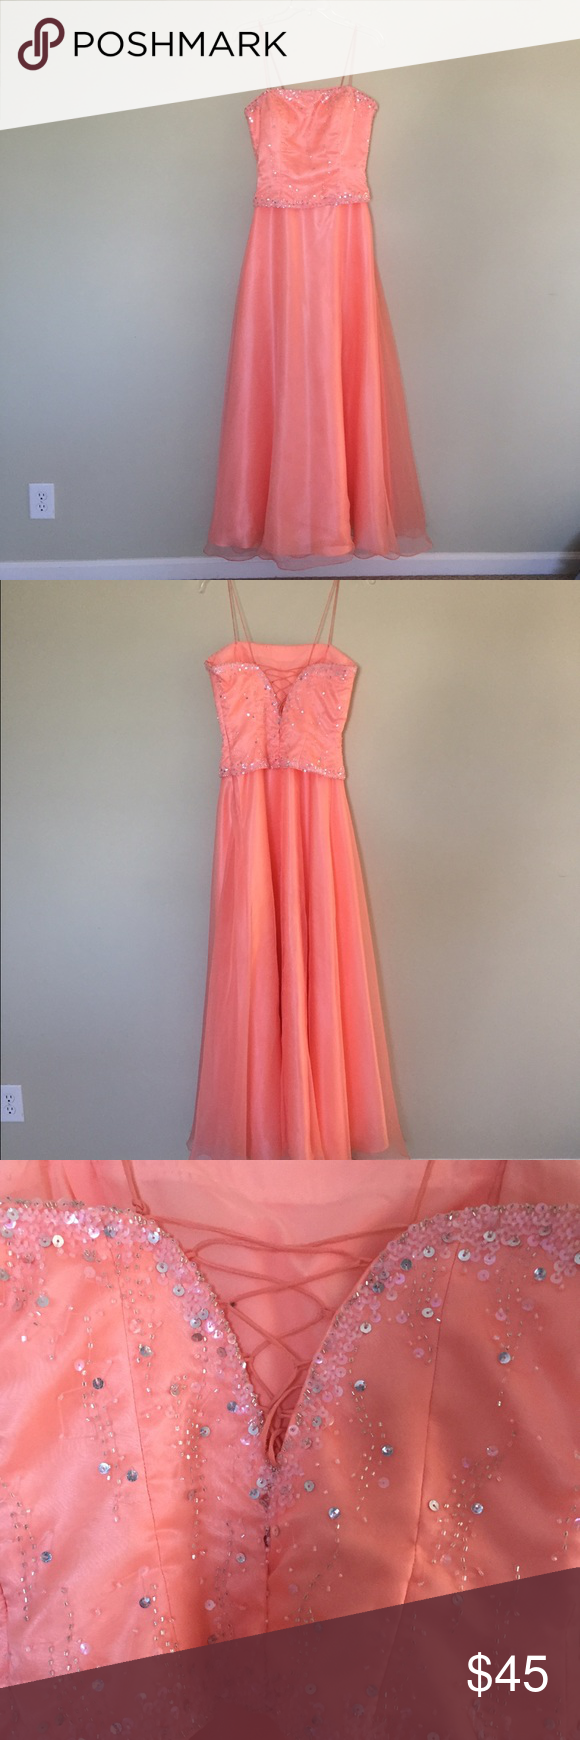 Coral Sparkly Gown Dress/ Prom Dress